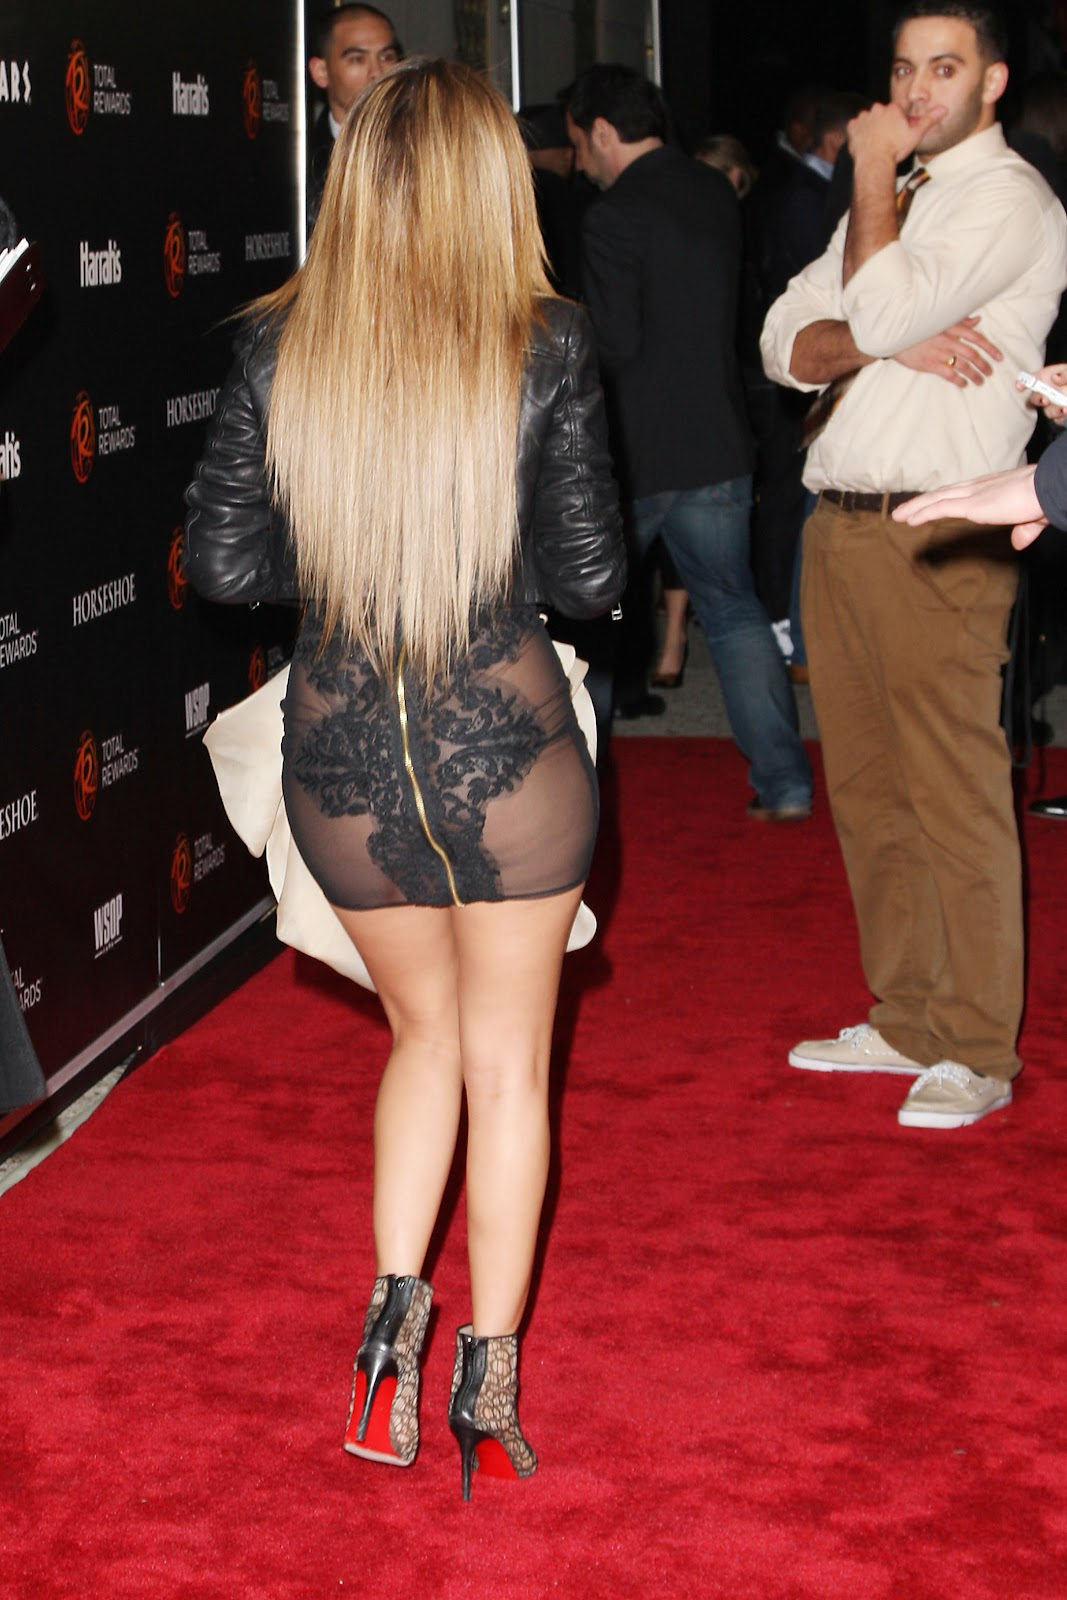 Rather valuable Adrienne bailon uncensored naked pics not leave!